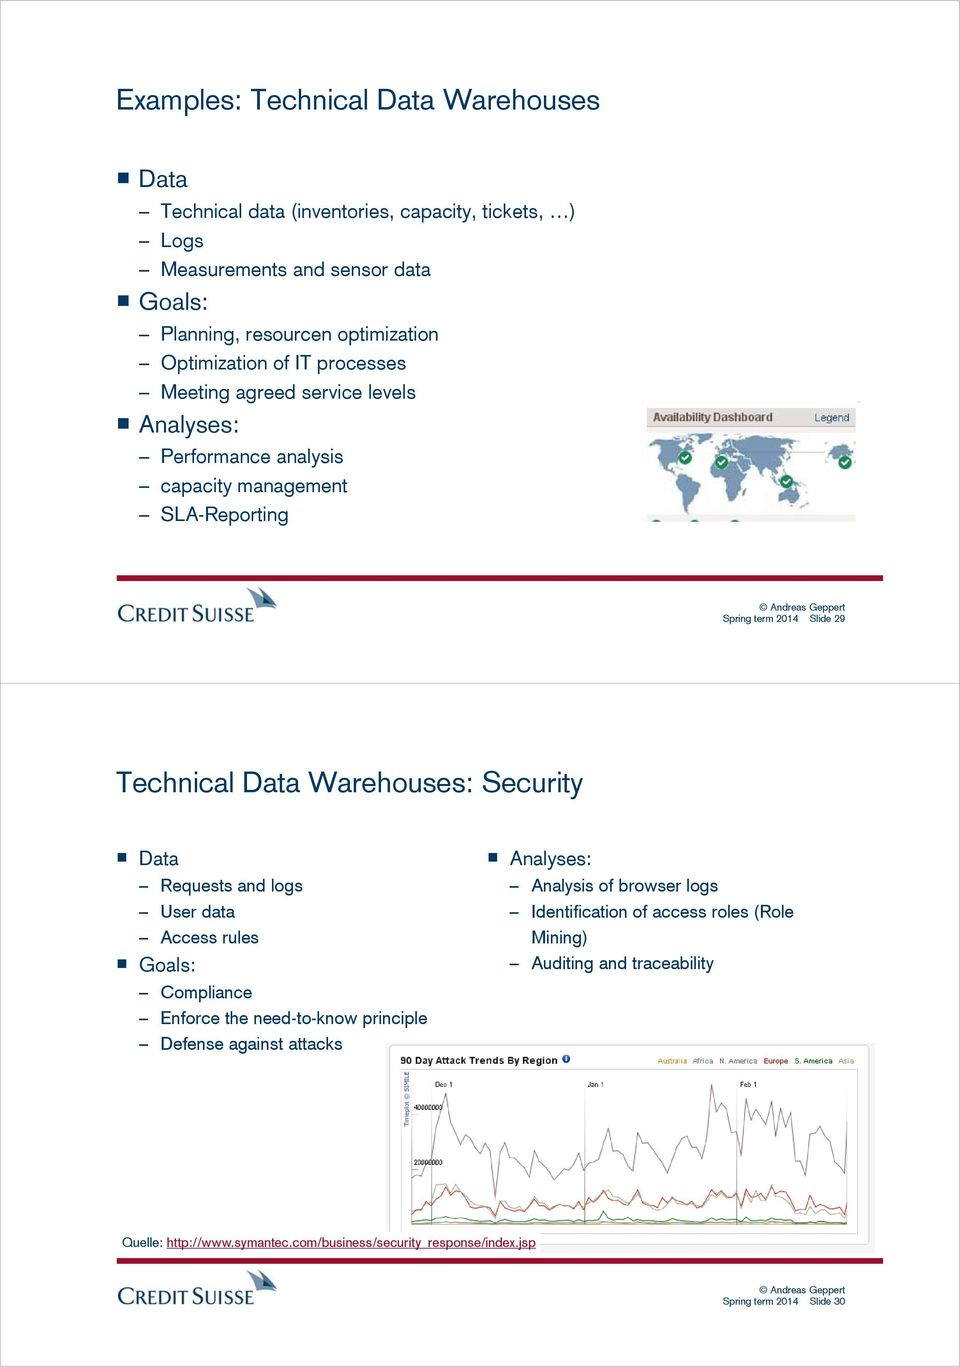 Warehouses: Security Data Requests and logs User data Access rules Goals: Compliance Enforce the need-to-know principle Defense against attacks Analyses: Analysis of